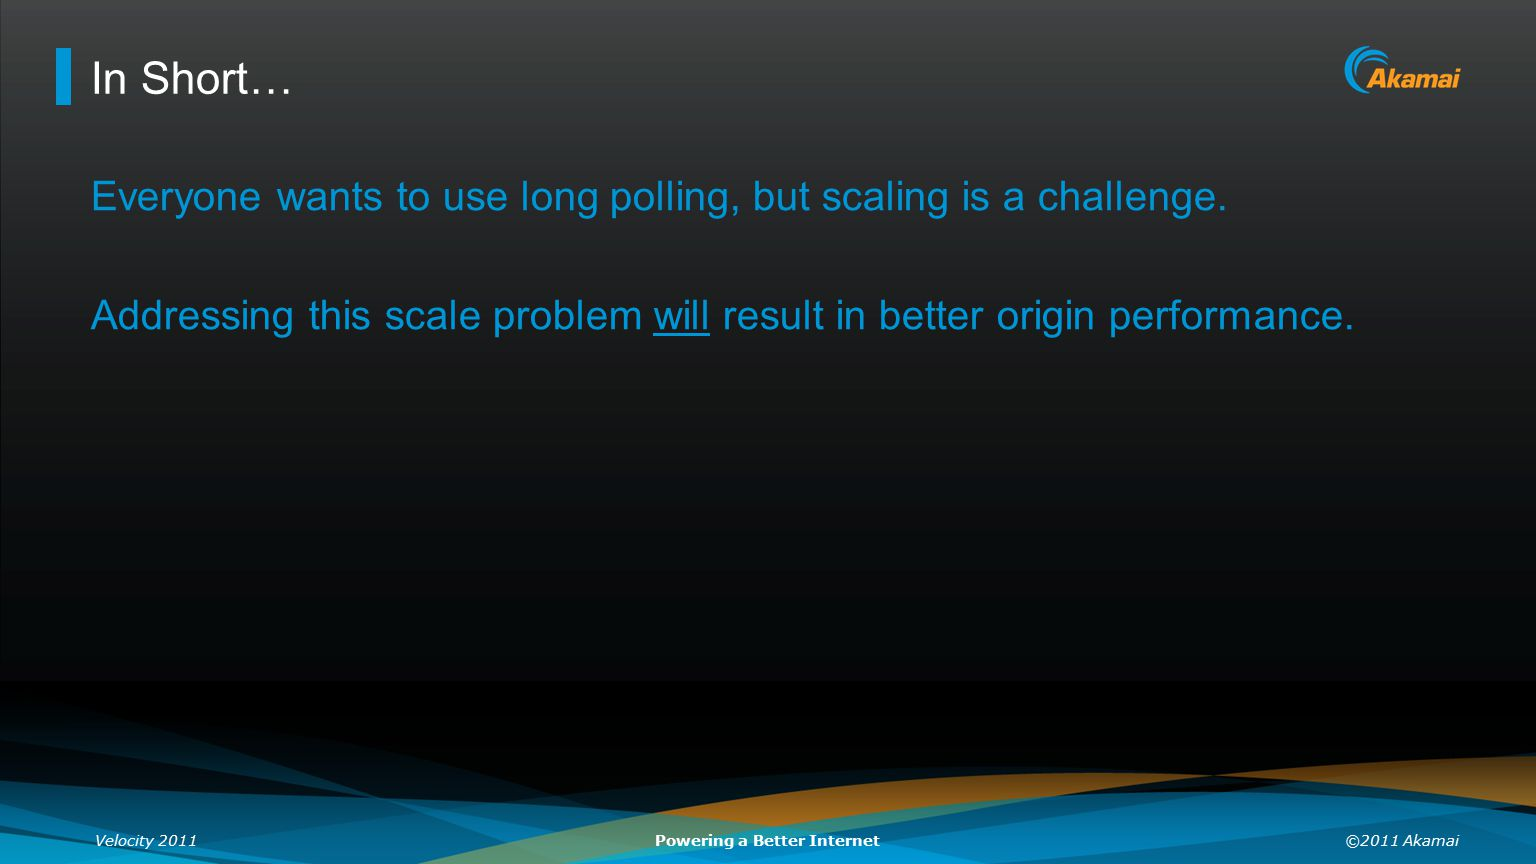 In Short… Everyone wants to use long polling, but scaling is a challenge.